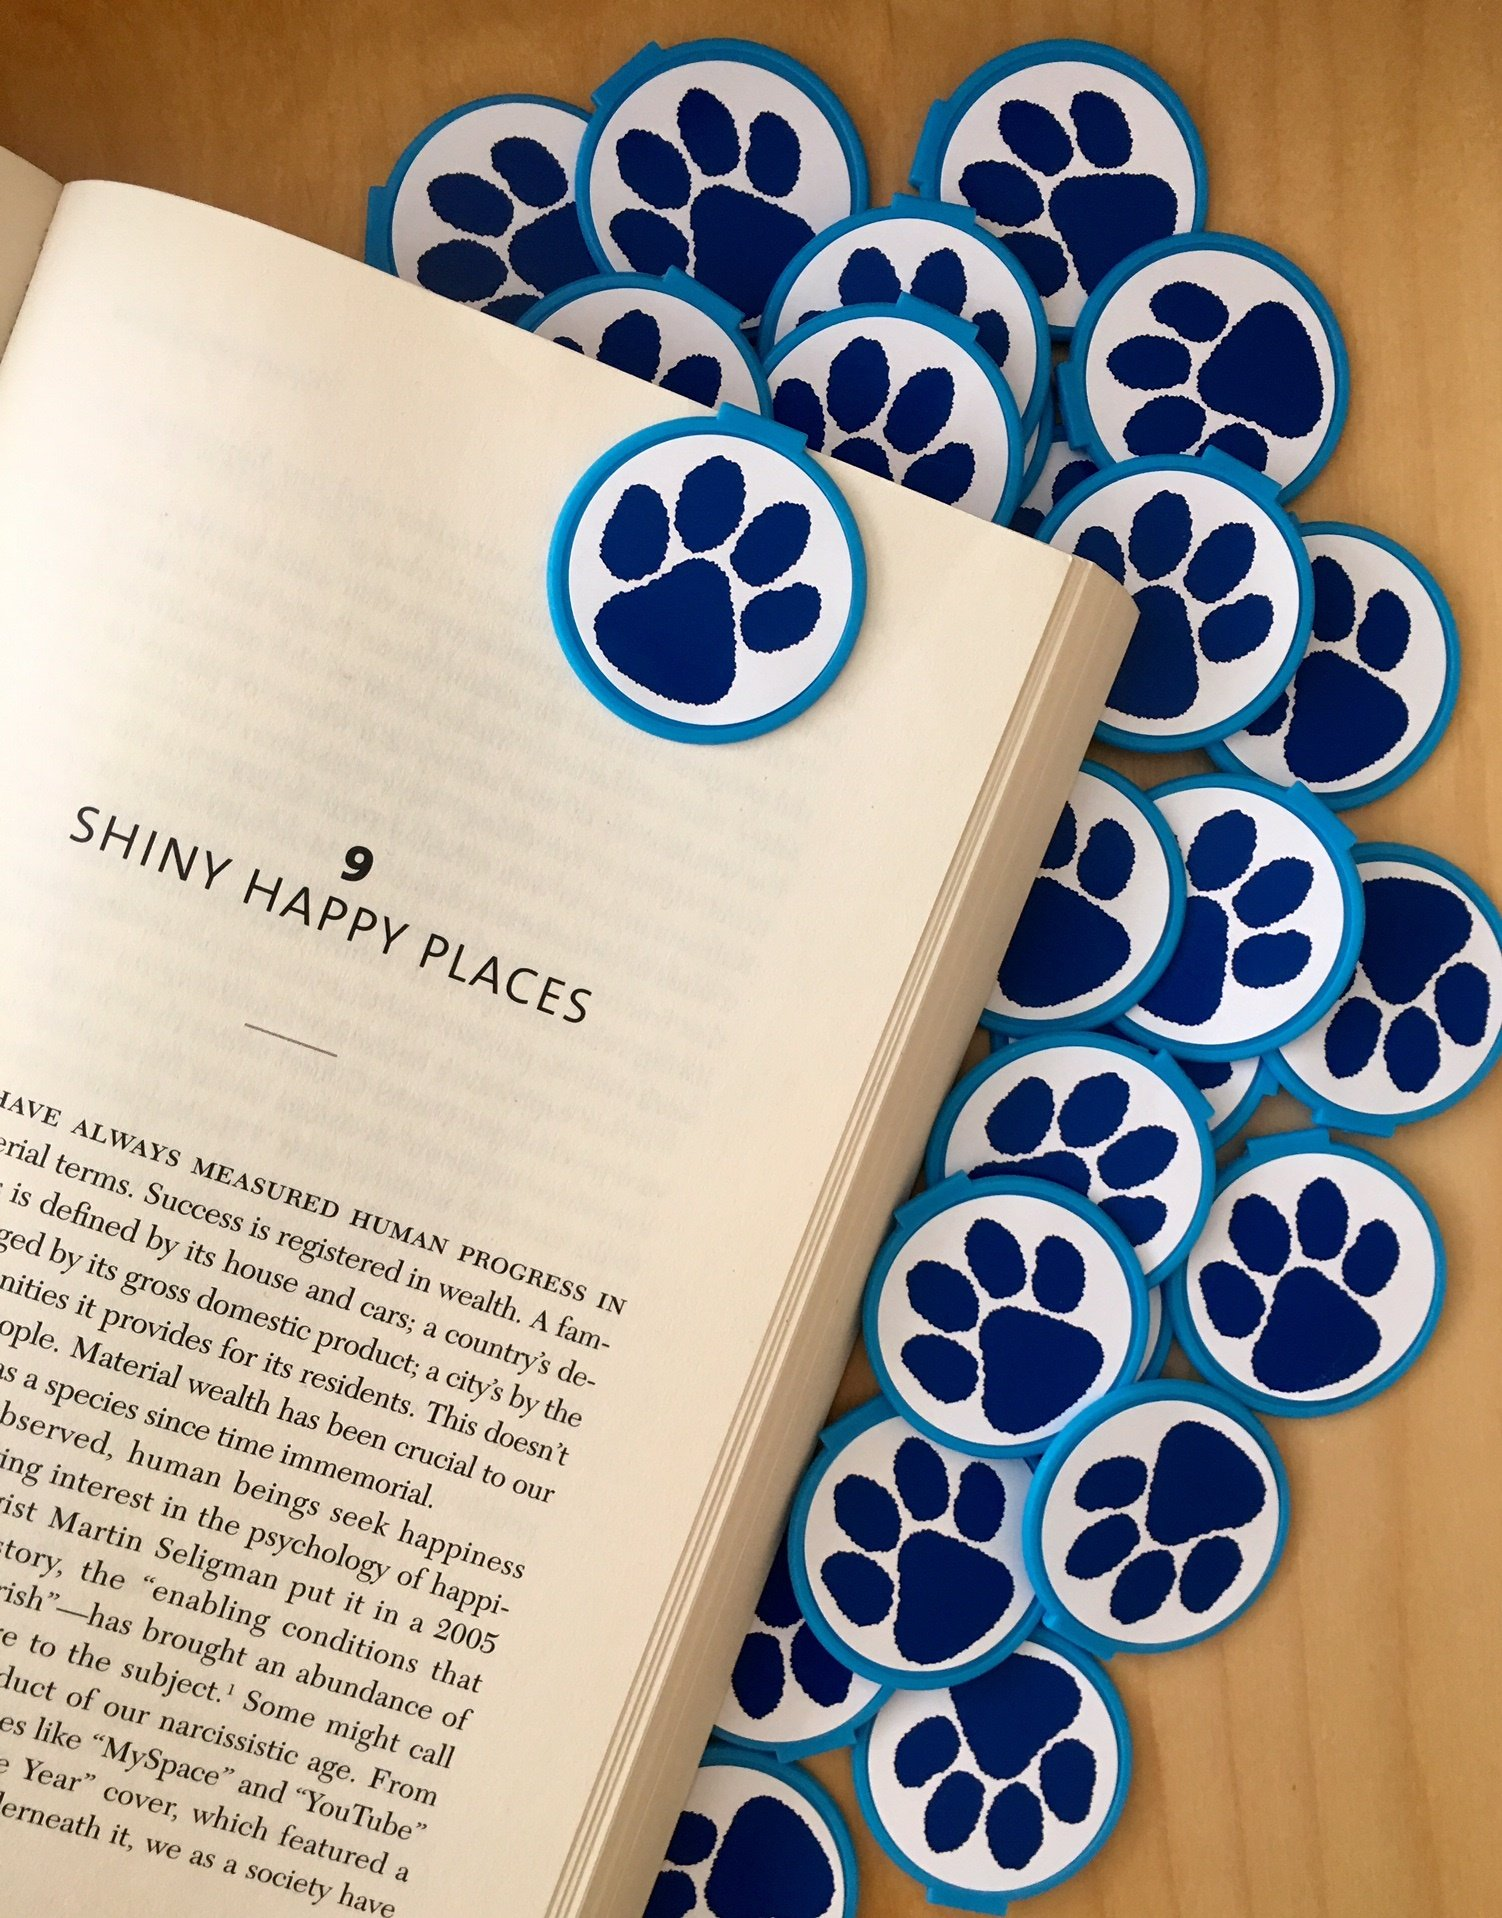 BLUE Spirit Paw Print School Mascot Bookmarks - 36 Bulk Bookmarks for Kids girl's boys- School Student Incentives – Library incentives – Reading Incentives - Classroom Reading Awards!